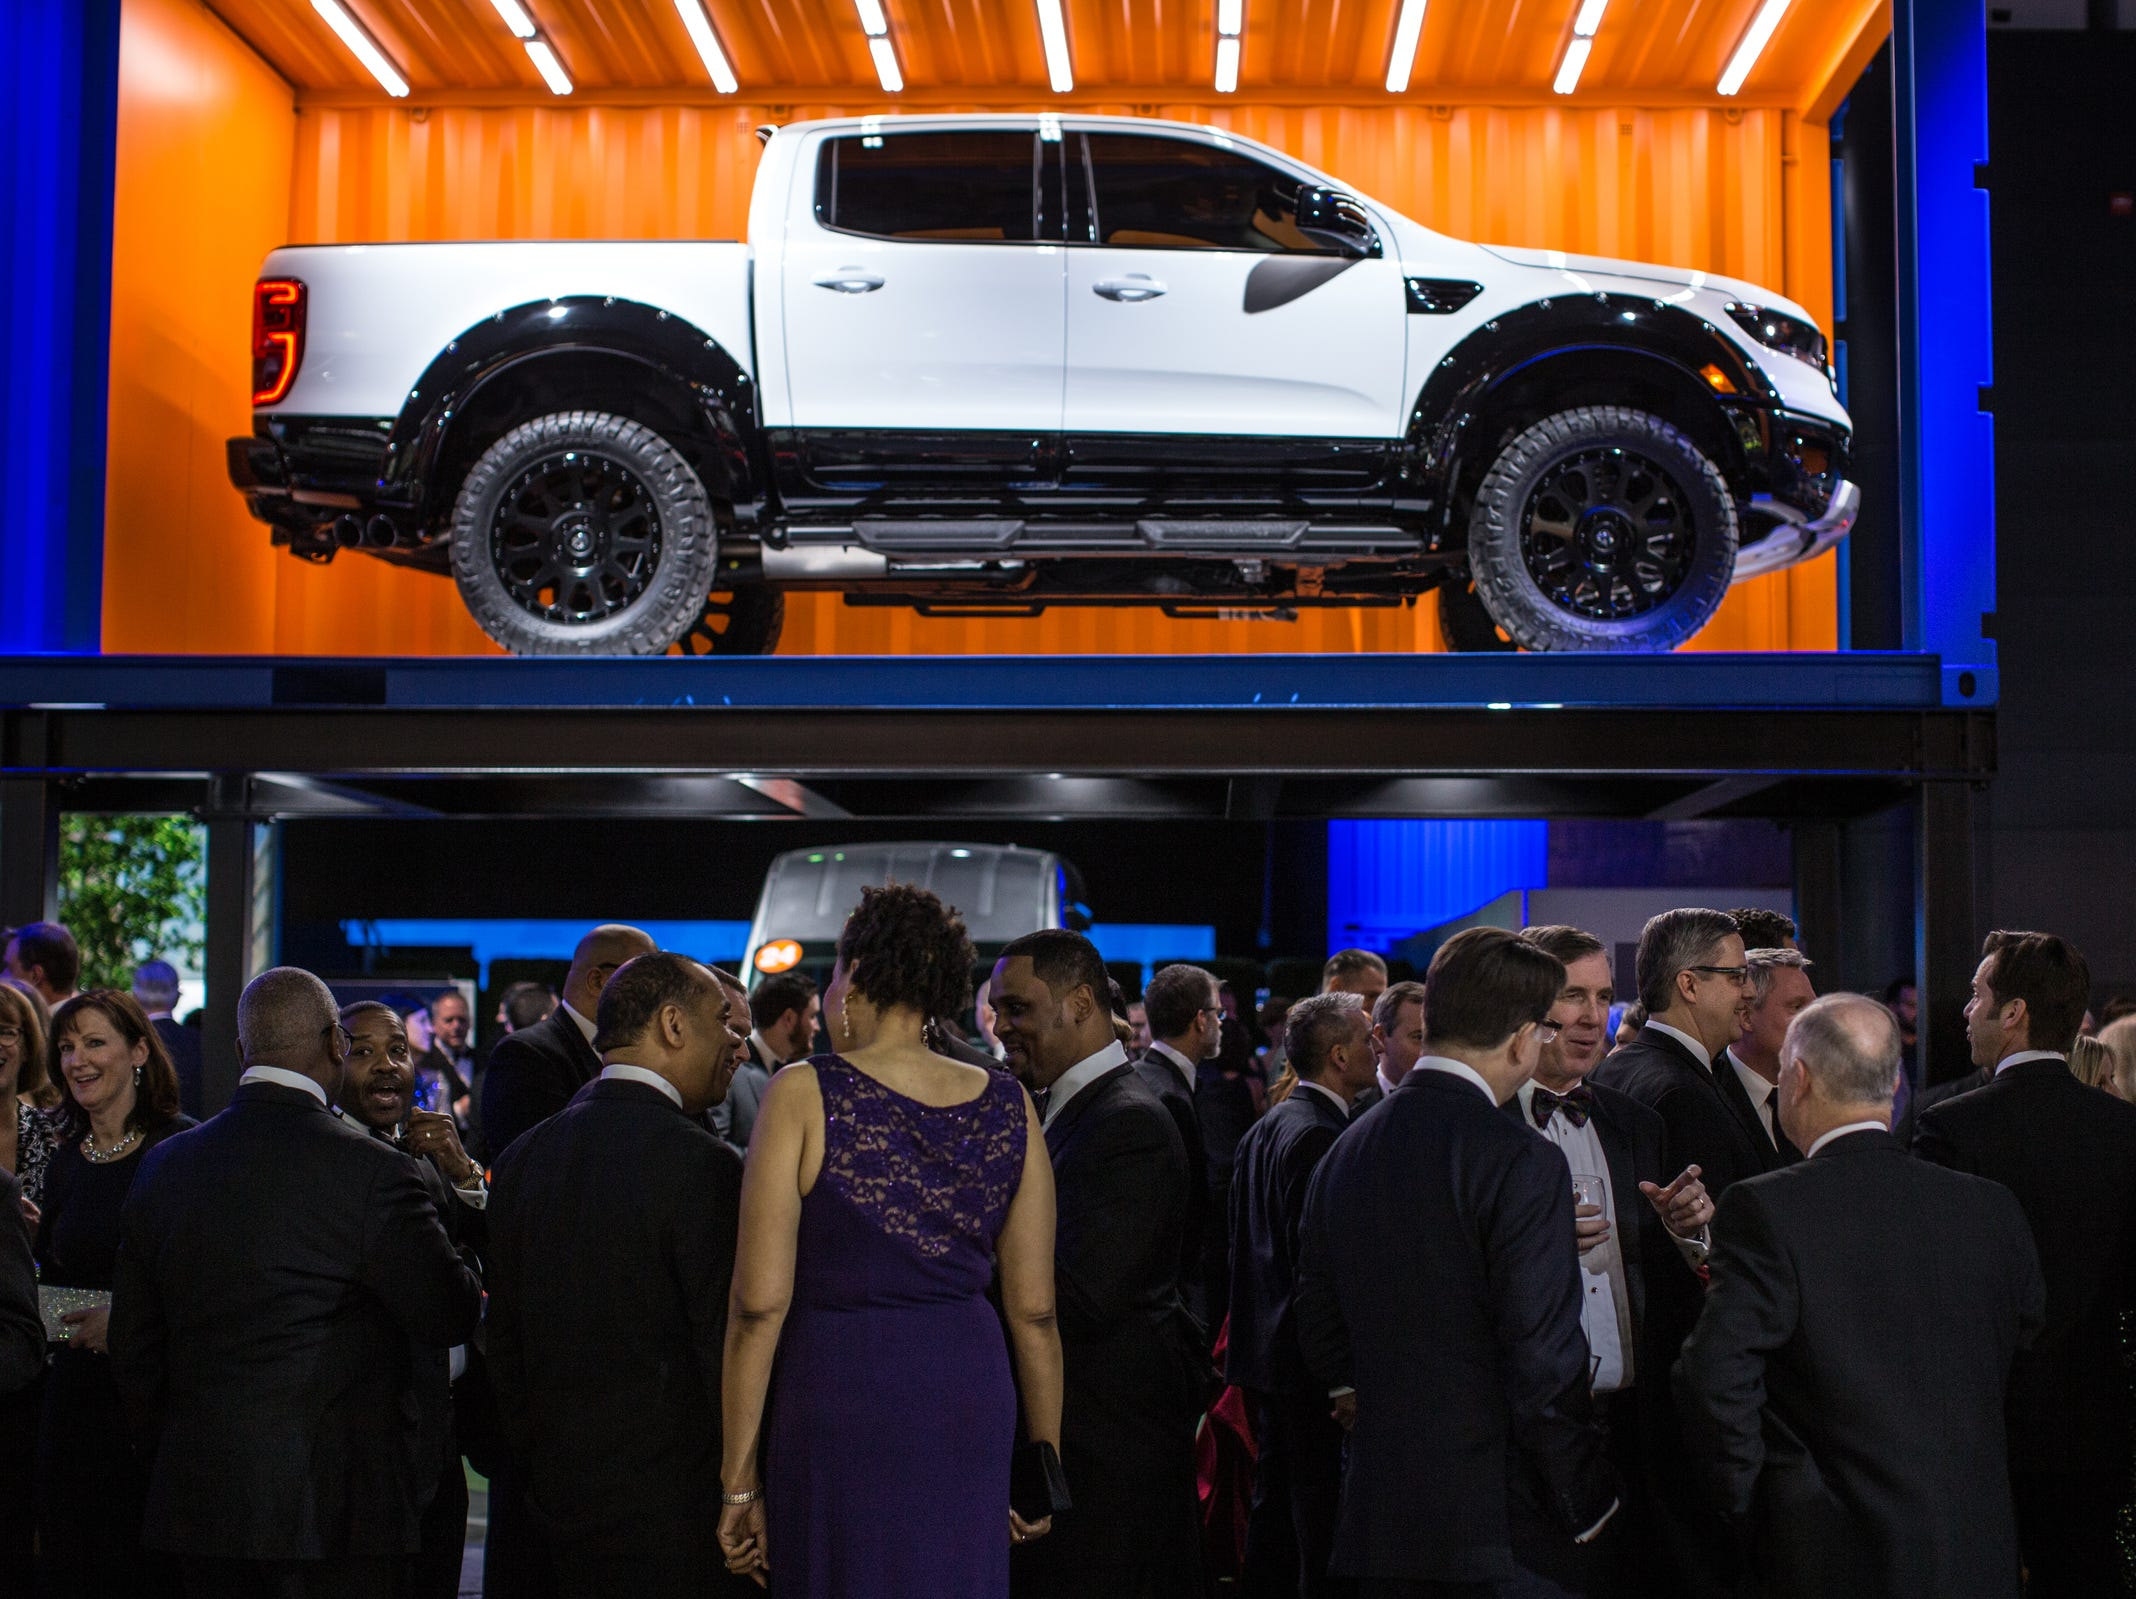 People stand and talk at the Ford display during the 2019 North American International Auto Show Charity Preview at Cobo Center in Detroit on Friday, January 18, 2019.